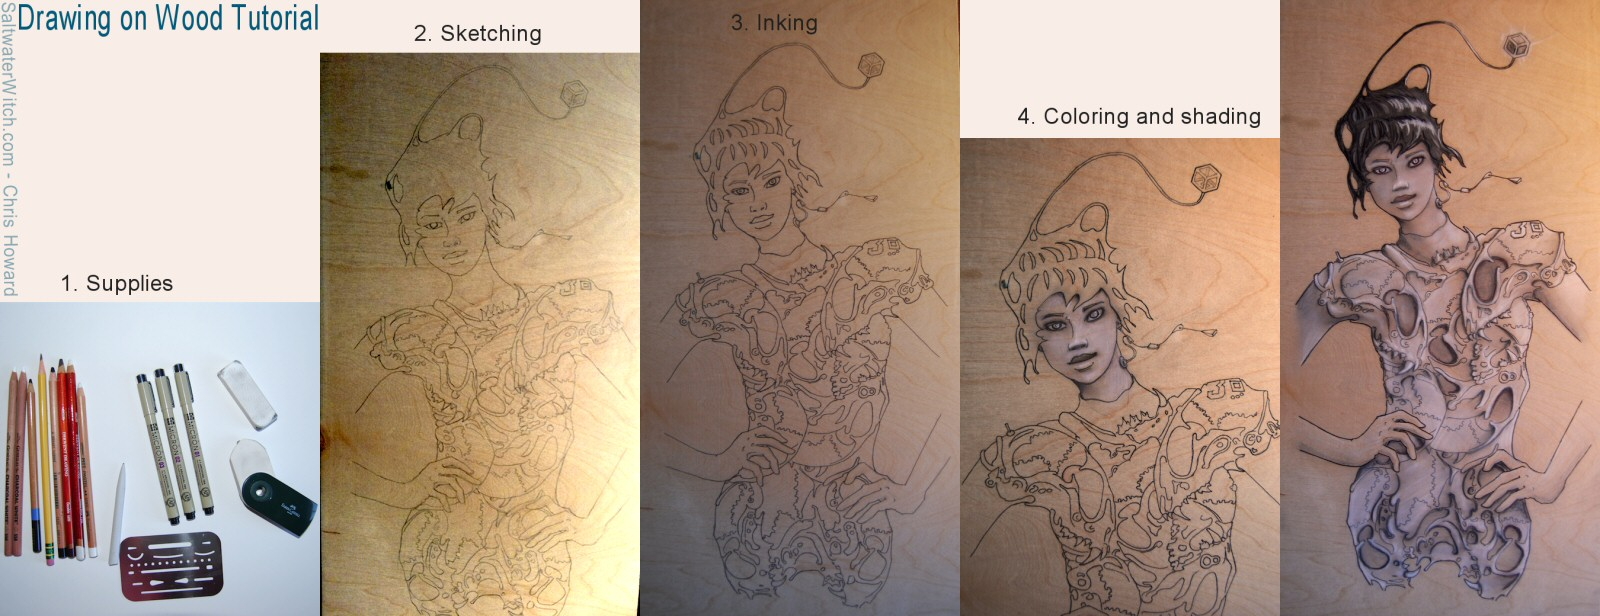 drawing on wood tutorial by the0phrastus on deviantart